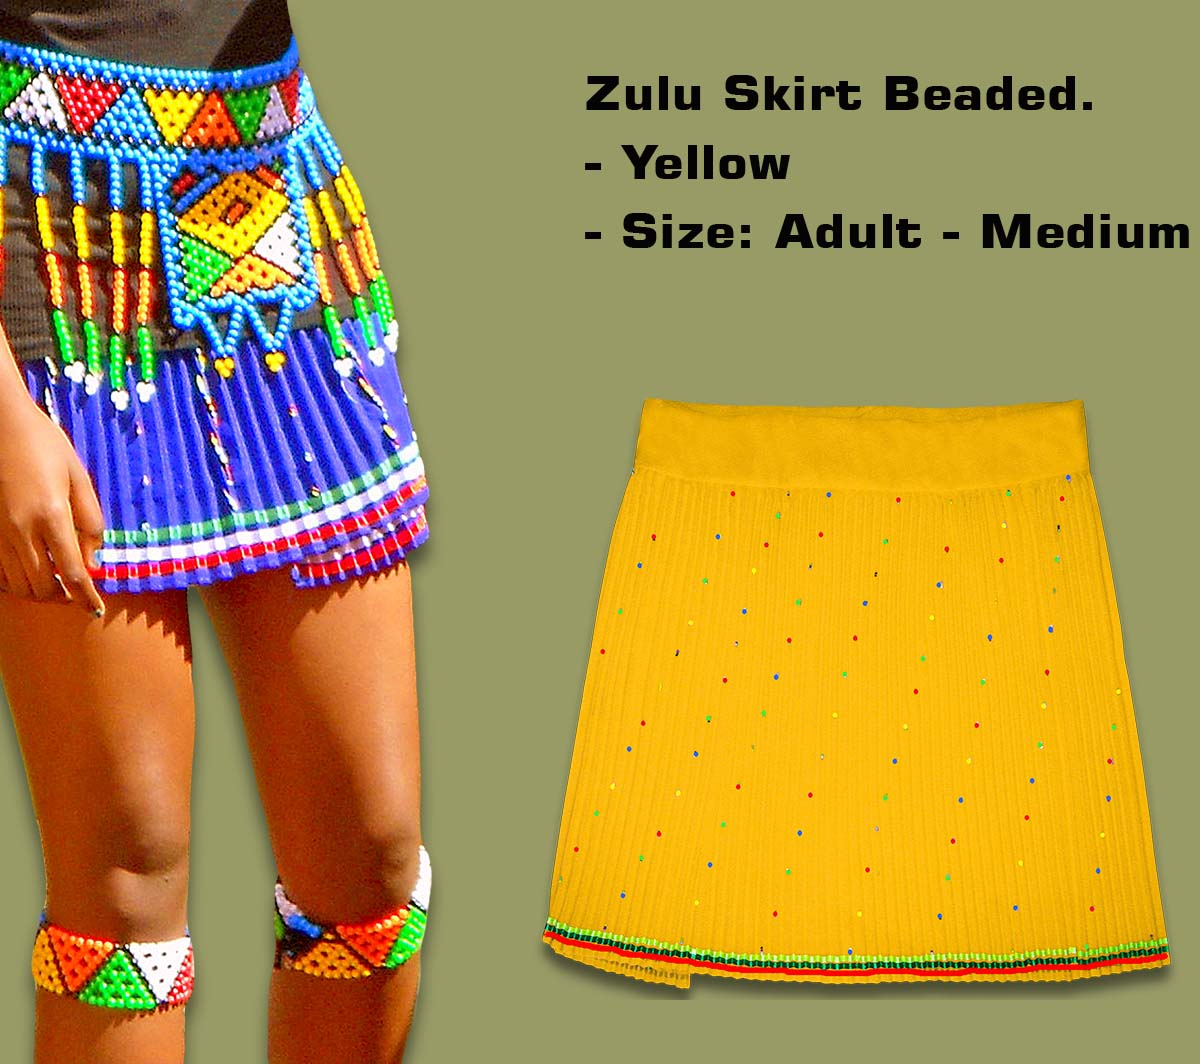 Beaded Zulu Skirt Adult Yellow Medium